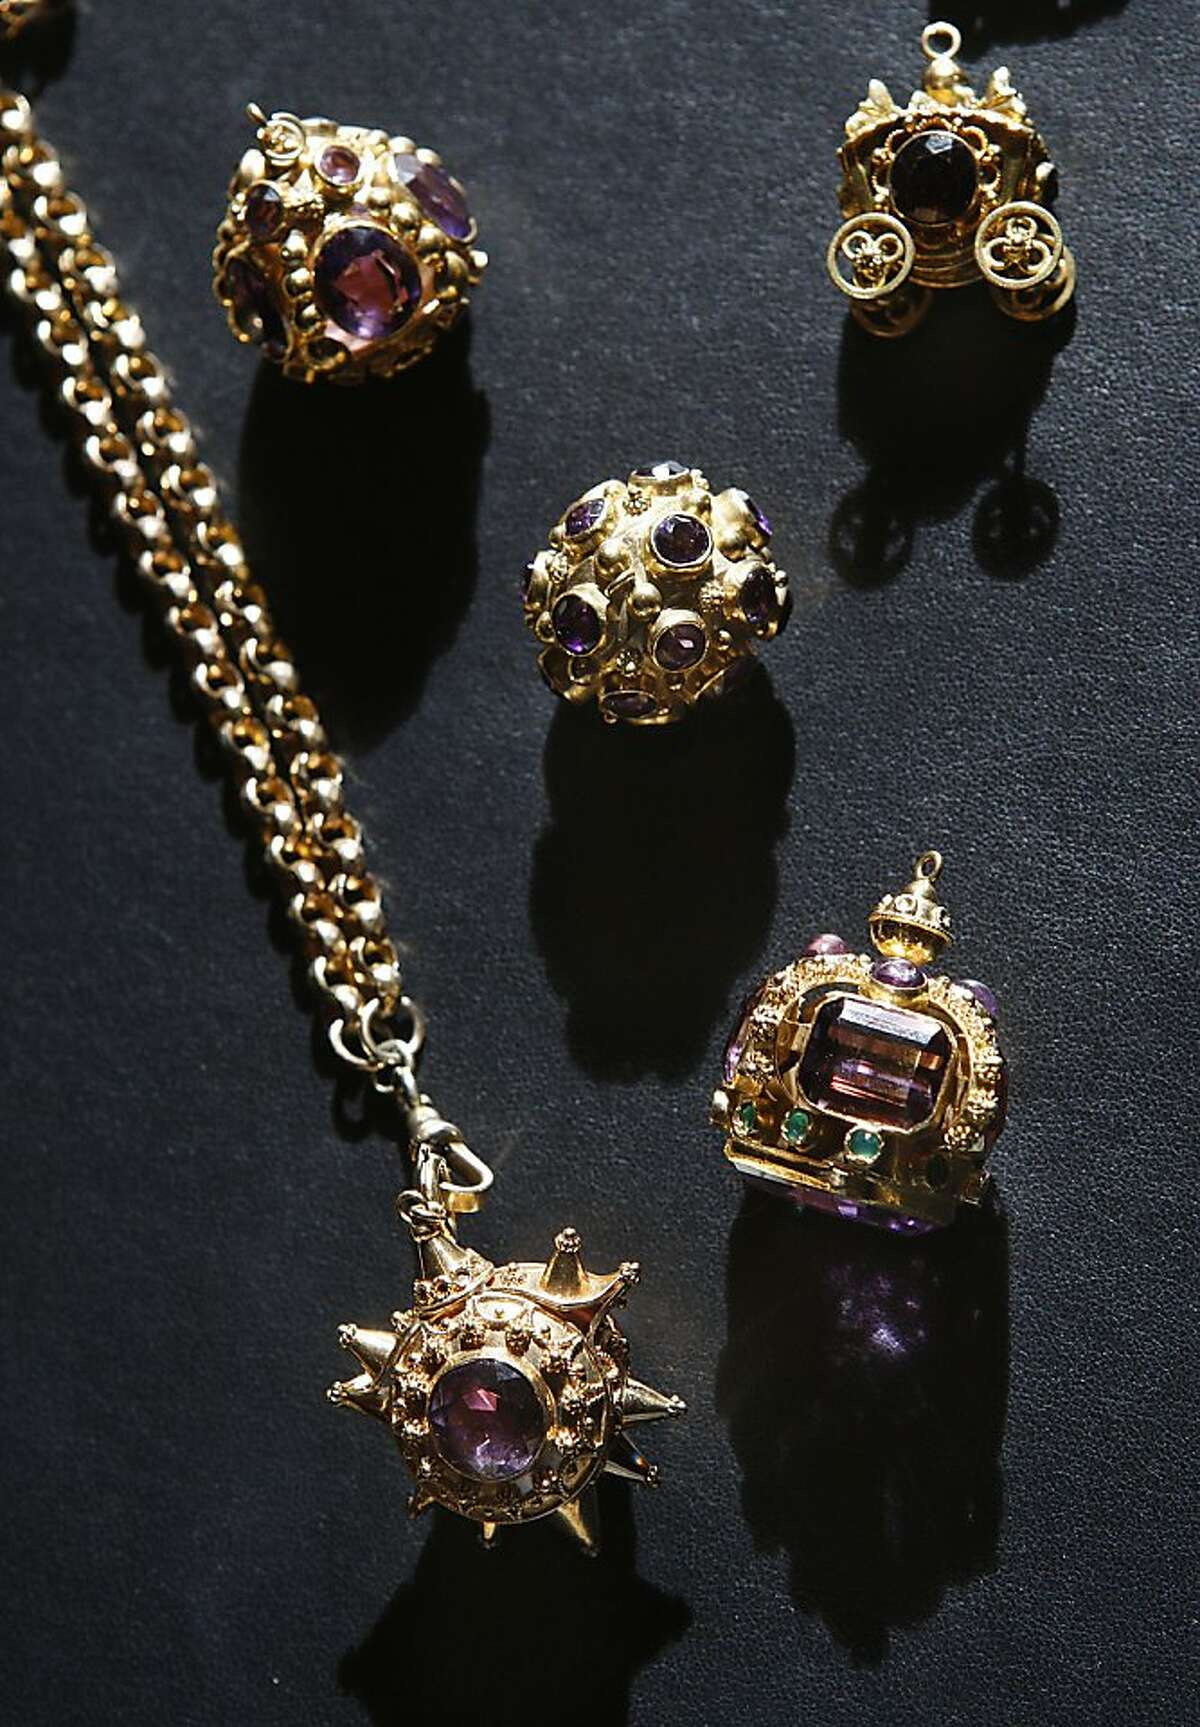 Meriwether in San Francisco maintains a range of jewelry, including these glittery charms.